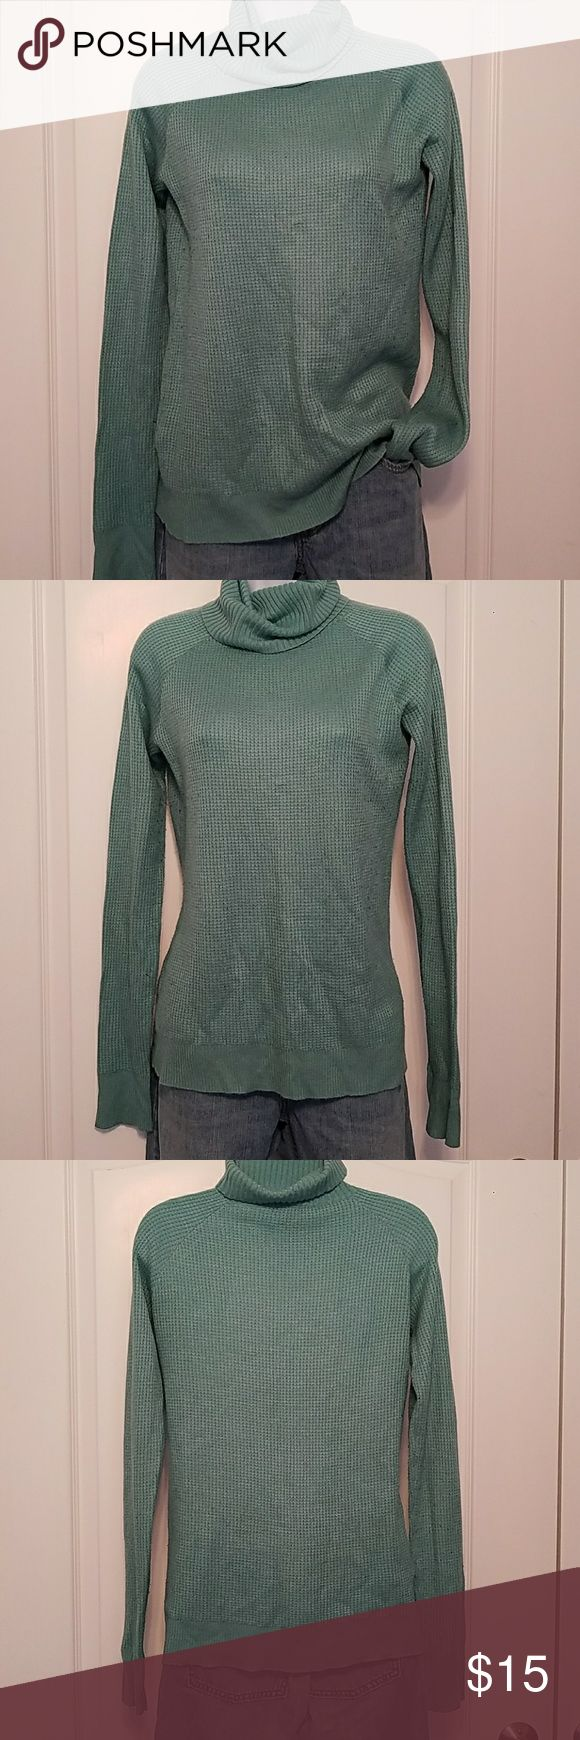 BCBG sweater Funnel neck waffle weave incredibly soft sweater in aqua green.  25 in long  25 inch long sleeves  10 inch funnel neck  Acrylic/nylon/spandex for a super soft feel and good stretch. 👉1 flaw noted under collar shown in last photo. Would fit size 4  to 10.  Bin 43 BCBGeneration Sweaters Cowl & Turtlenecks